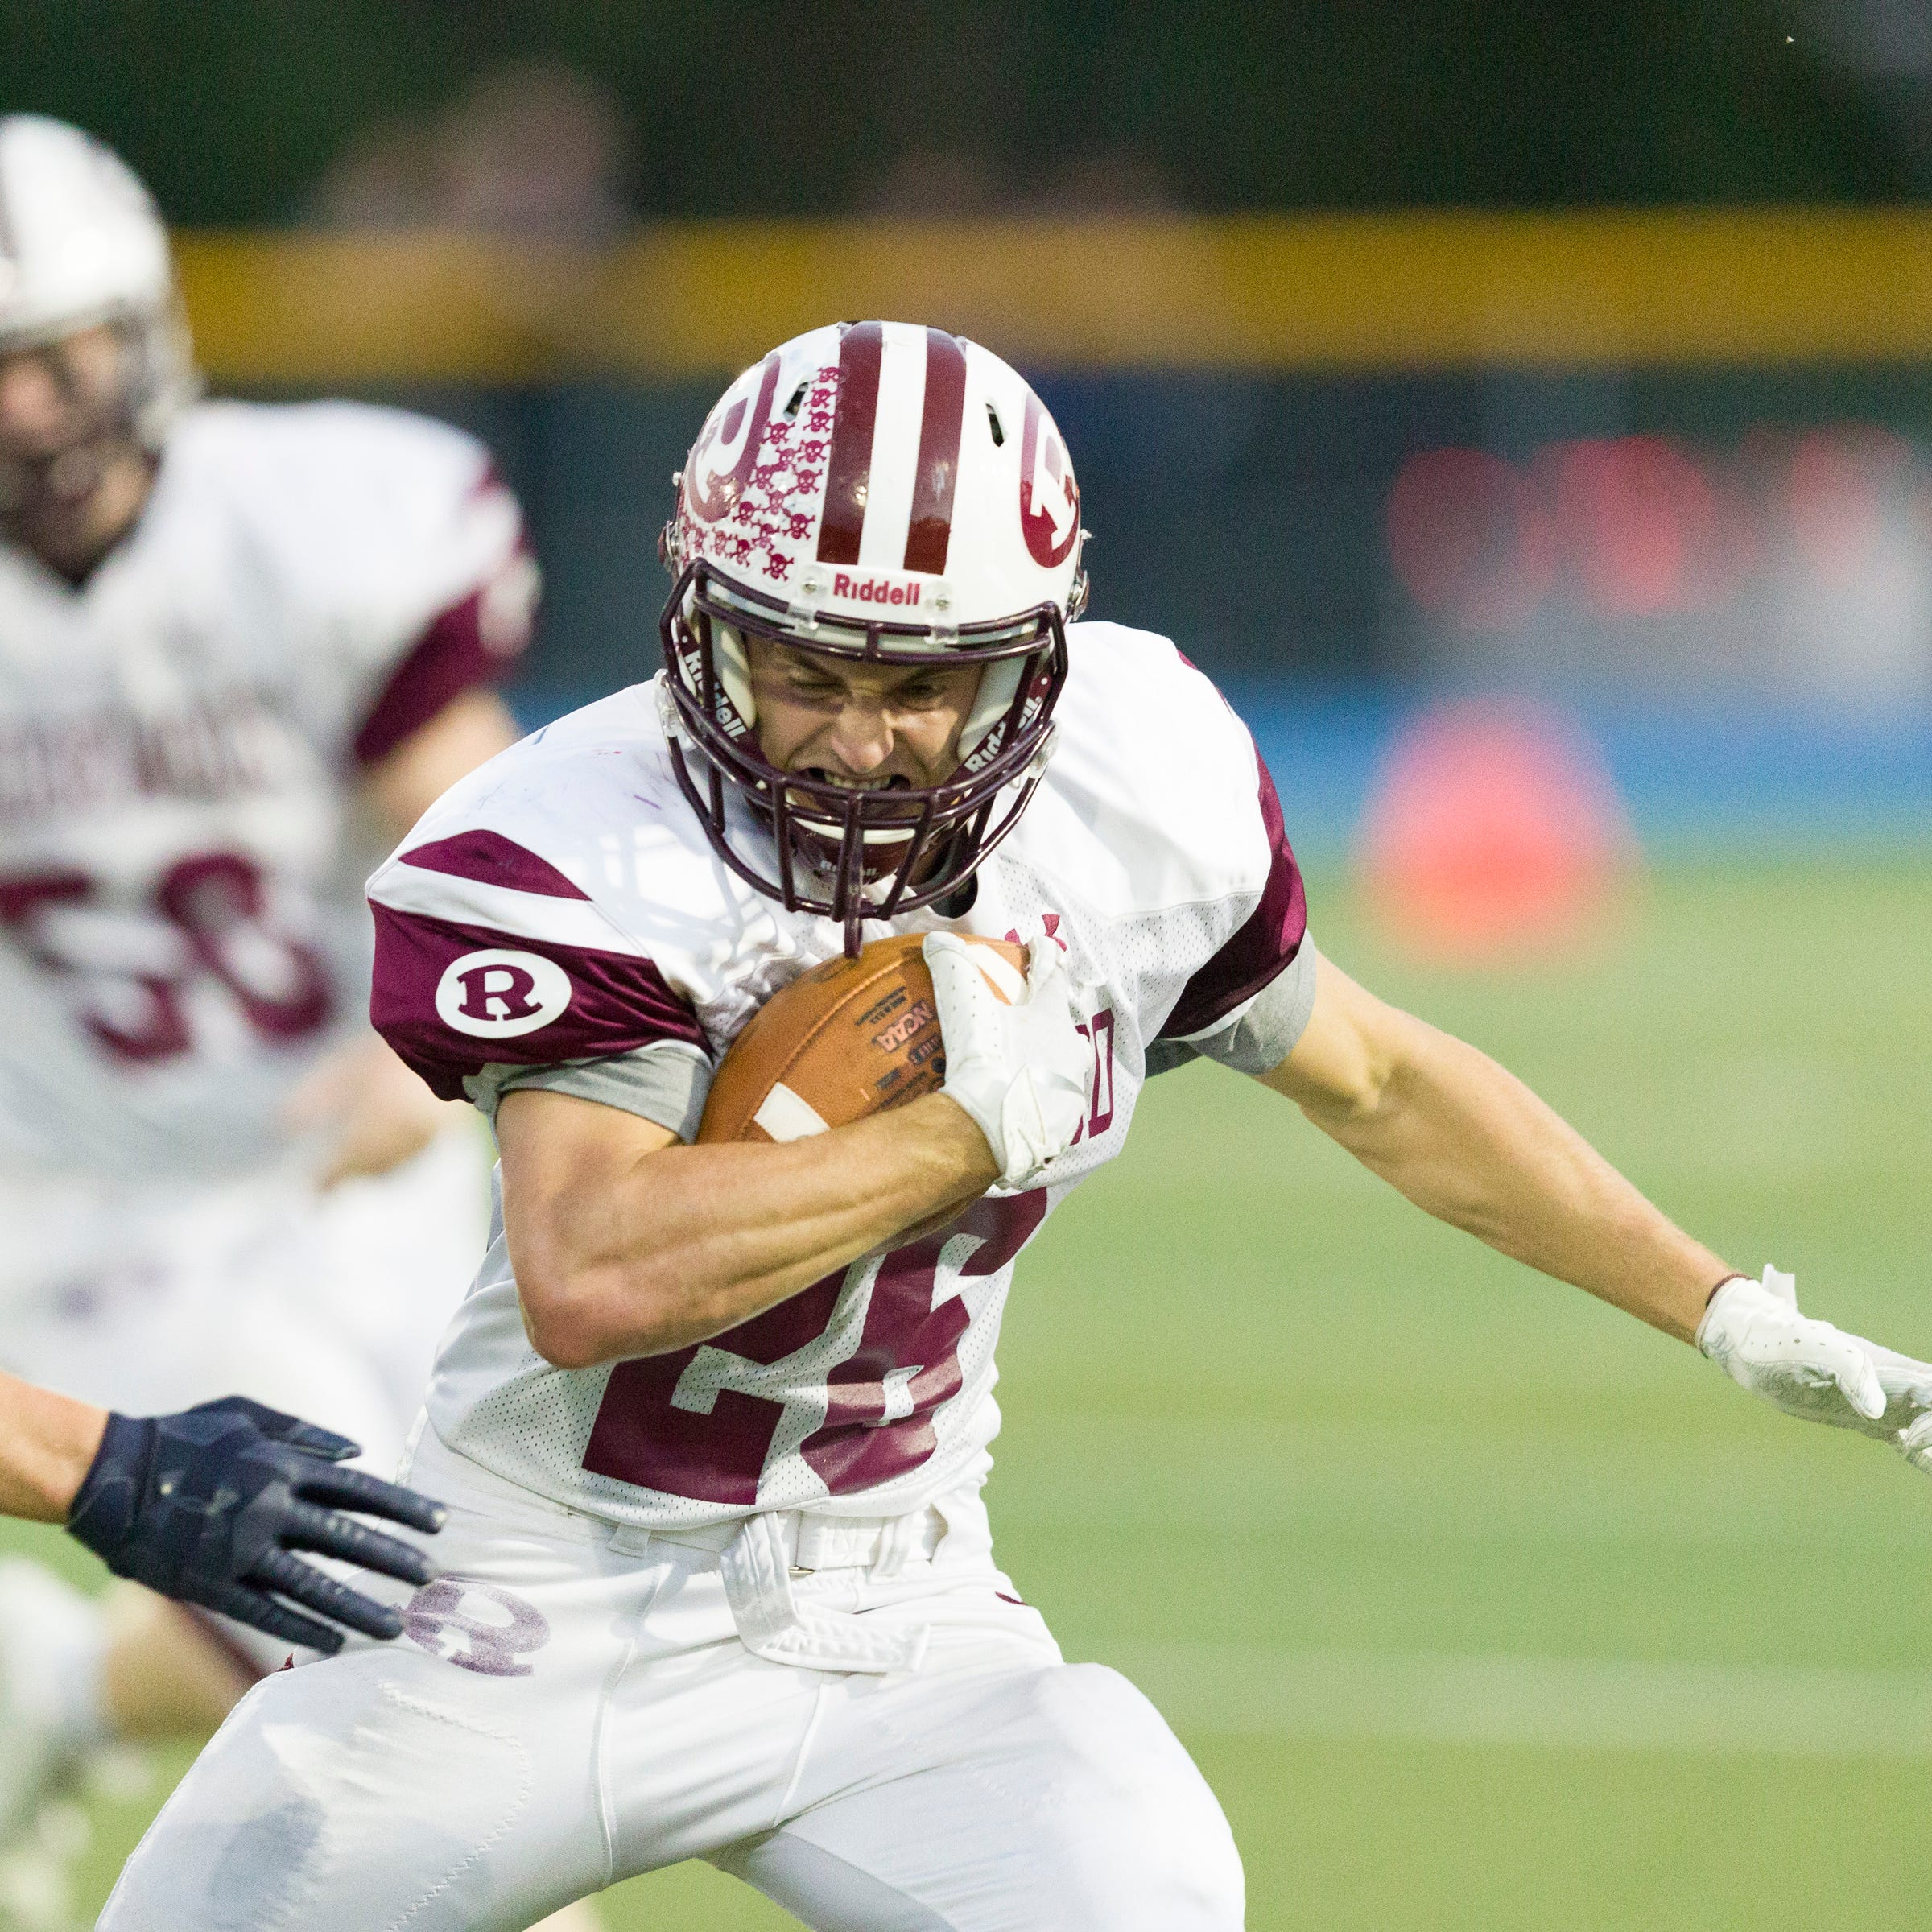 Vote for the North Jersey Football Player of the Week for Week 6